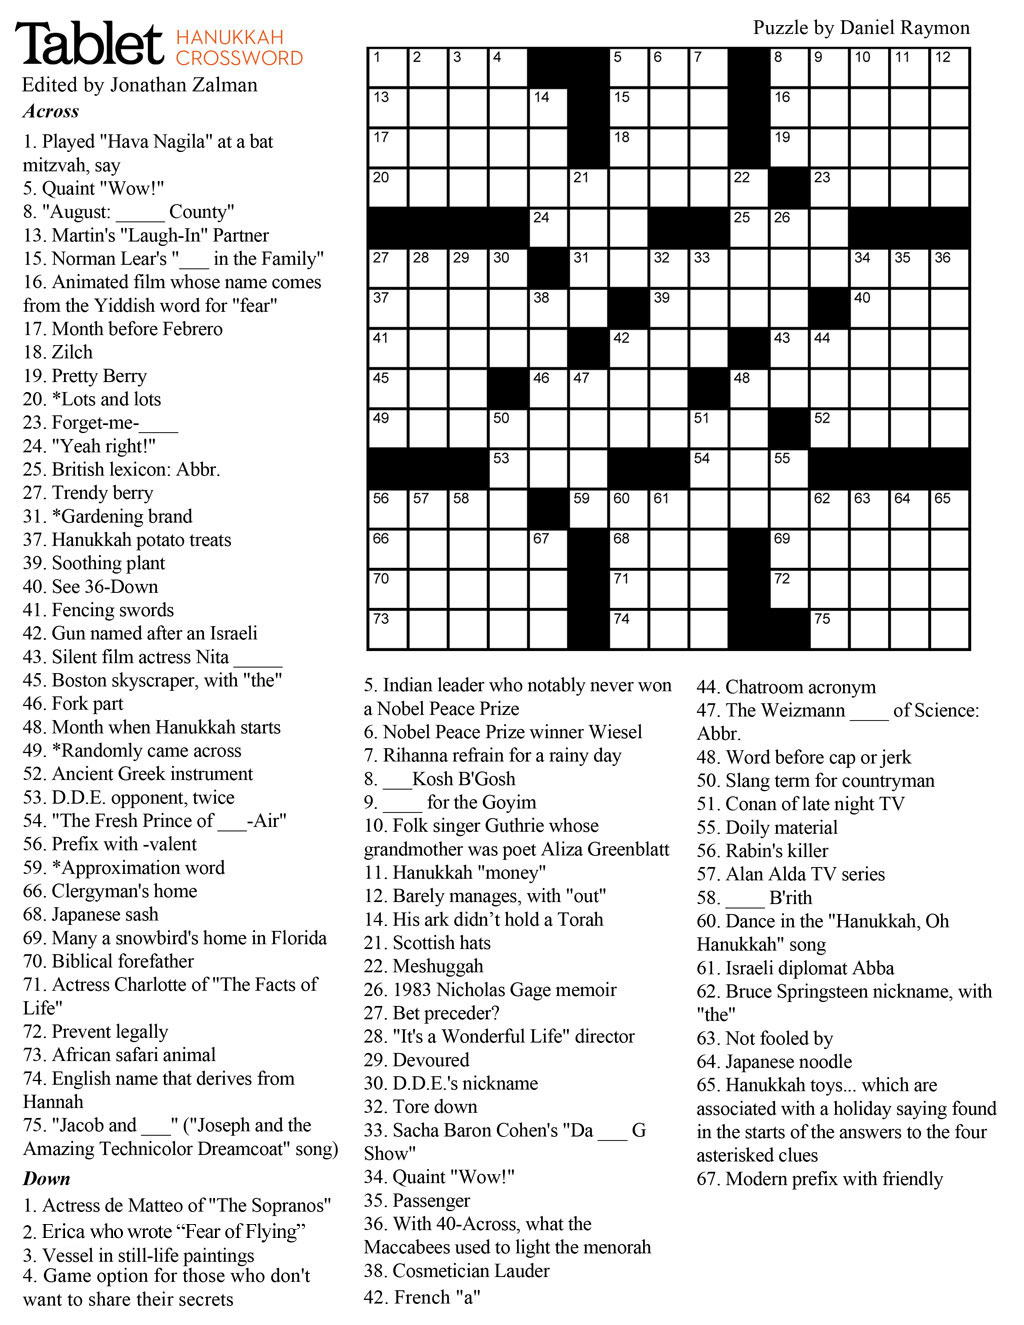 Wind Down With Our Hanukkah Crossword Puzzle! – Tablet Magazine - Printable History Puzzles